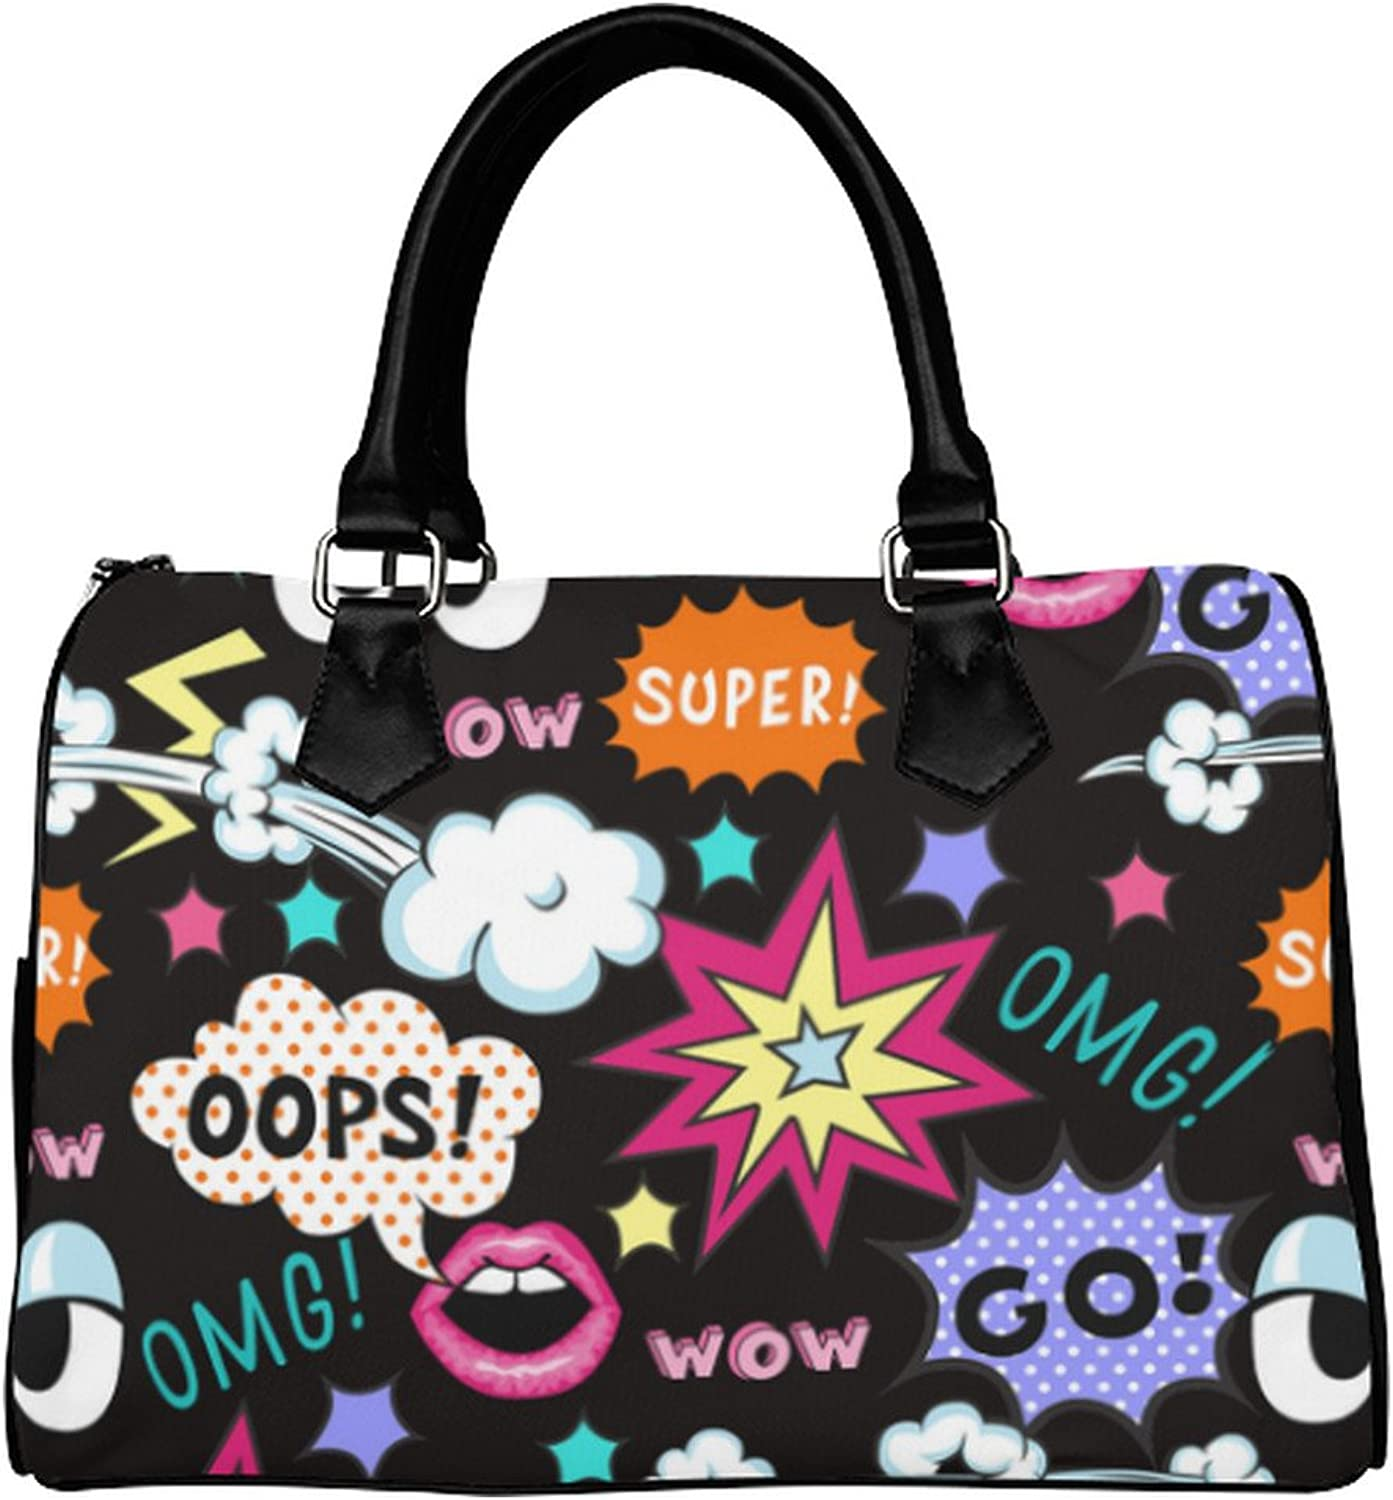 Yourfantasia Pop Art WOW OOPS OMG Boston Bag Handbag